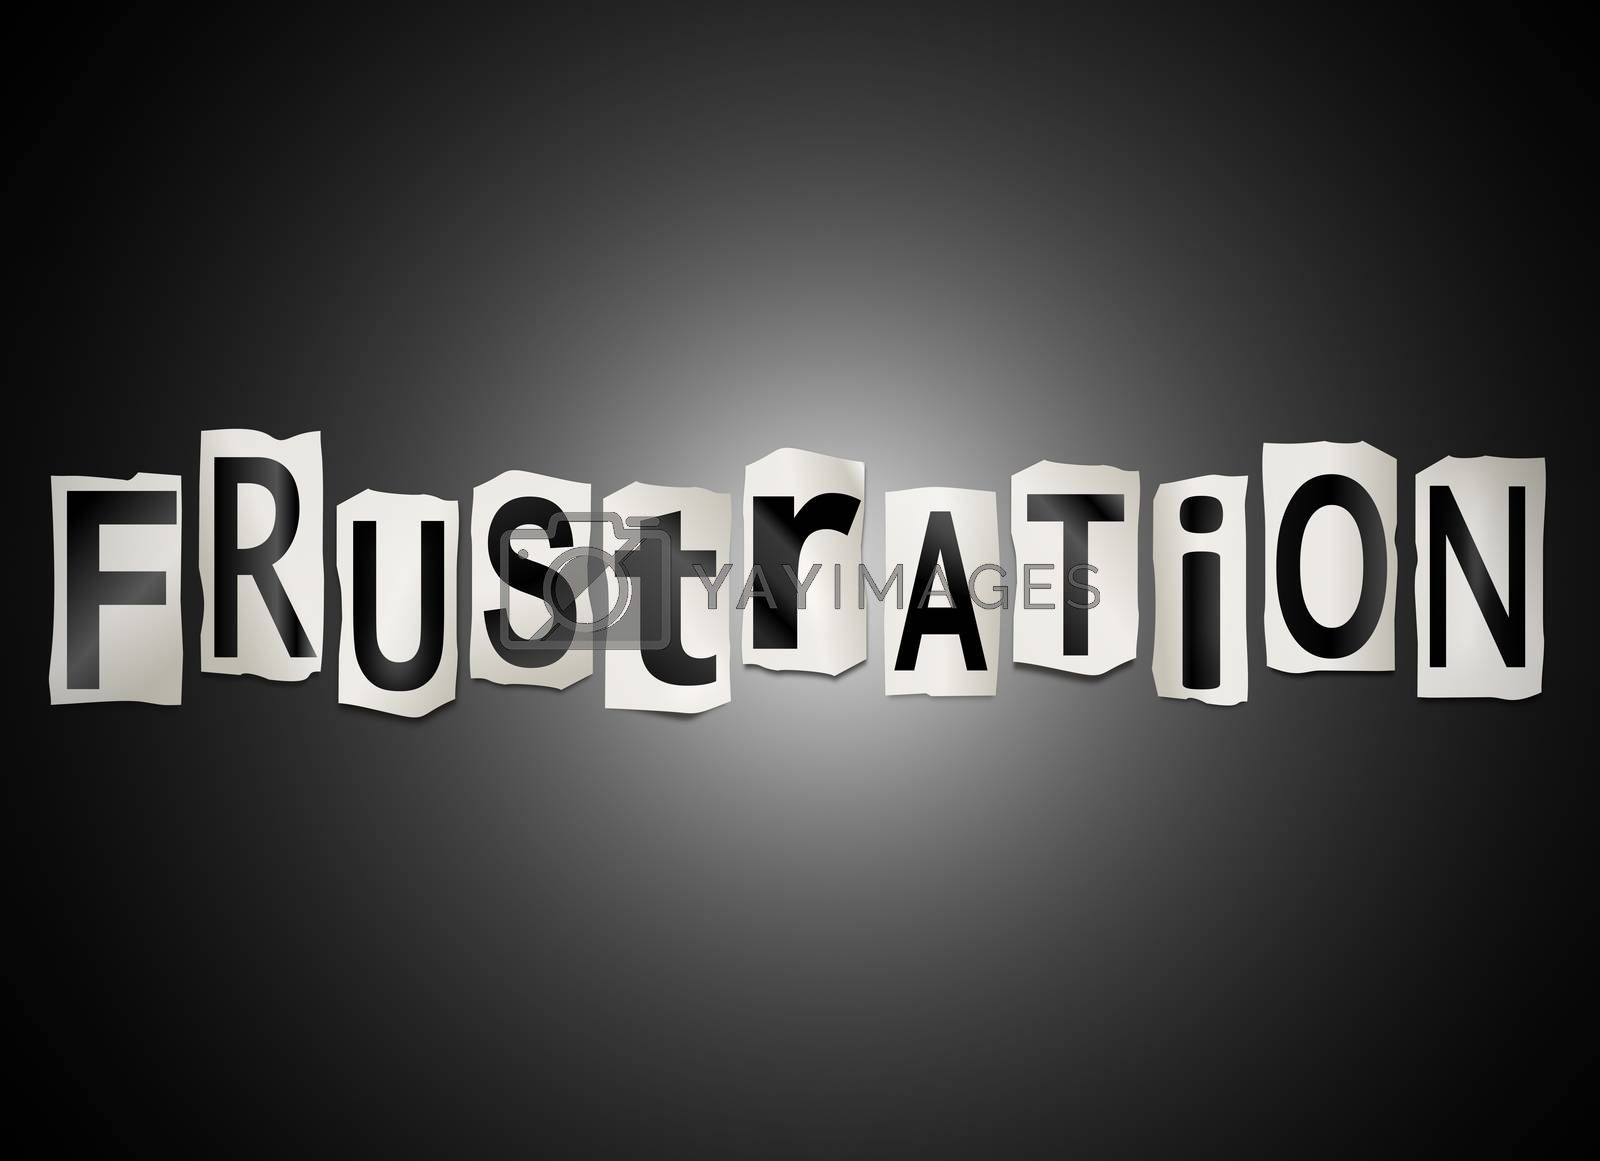 Illustration depicting a set of cut out printed letters arranged to form the word frustration.